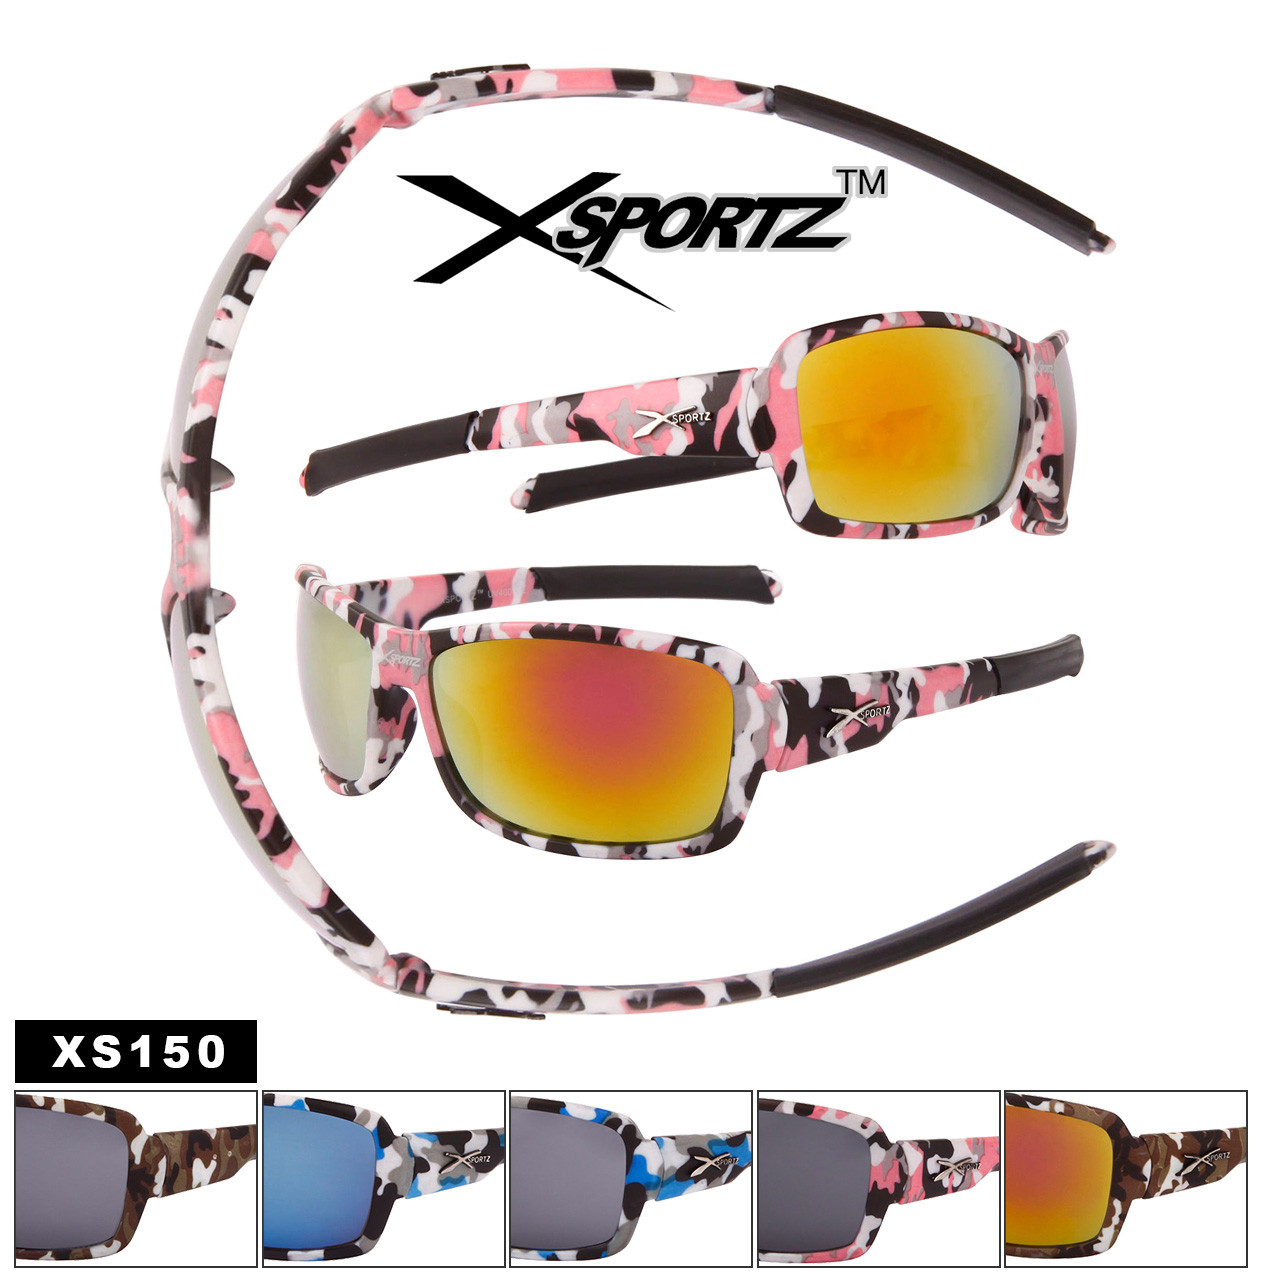 Xsportz™ Camouflage Sports Sunglasses Wholesale - Style #XS150